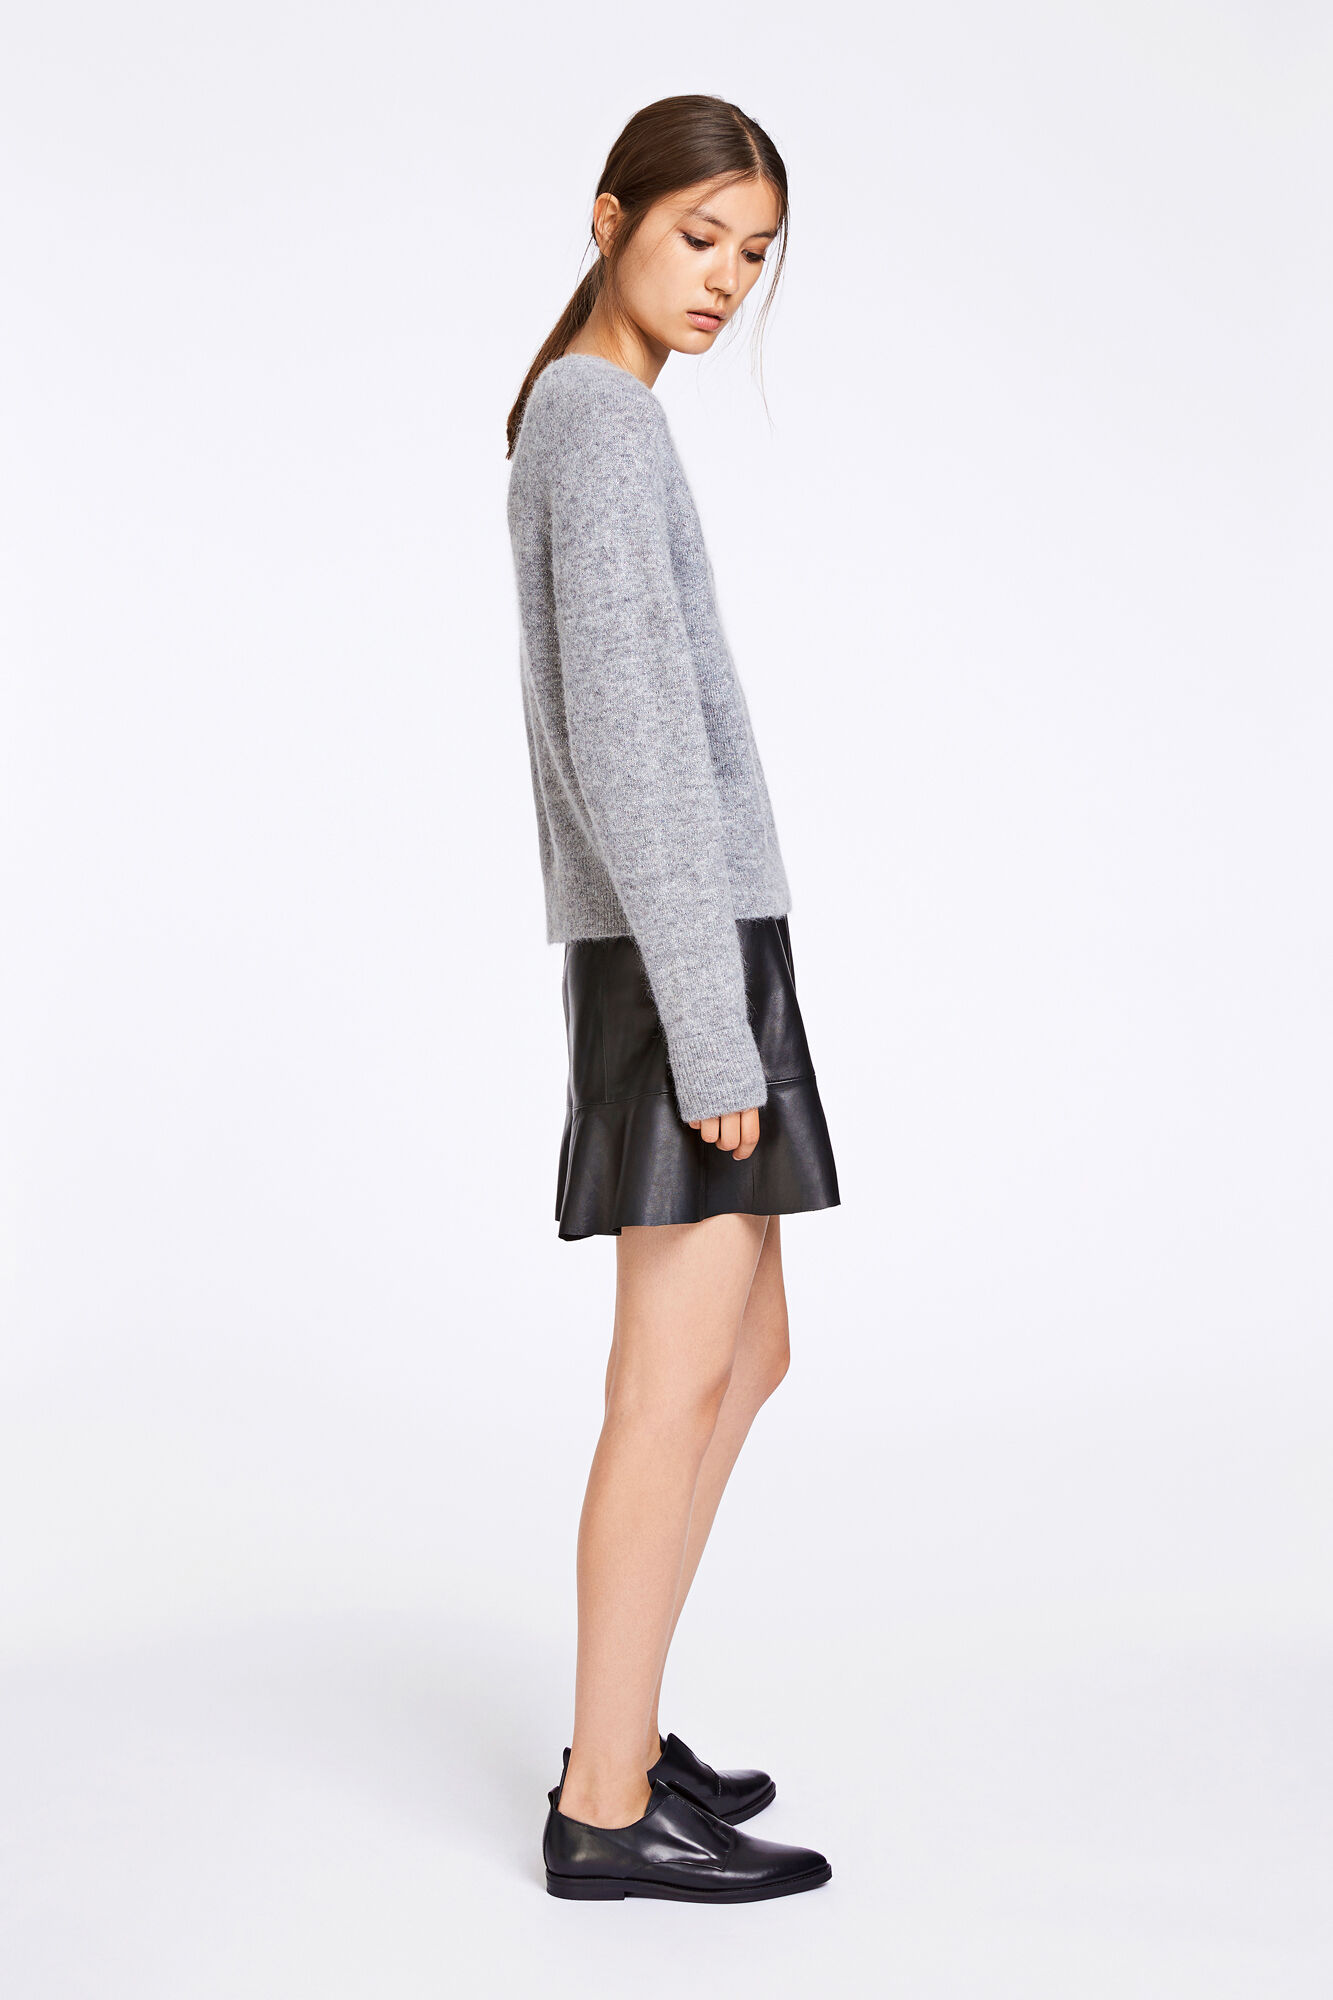 Nor o-n short 9632, GREY MEL.